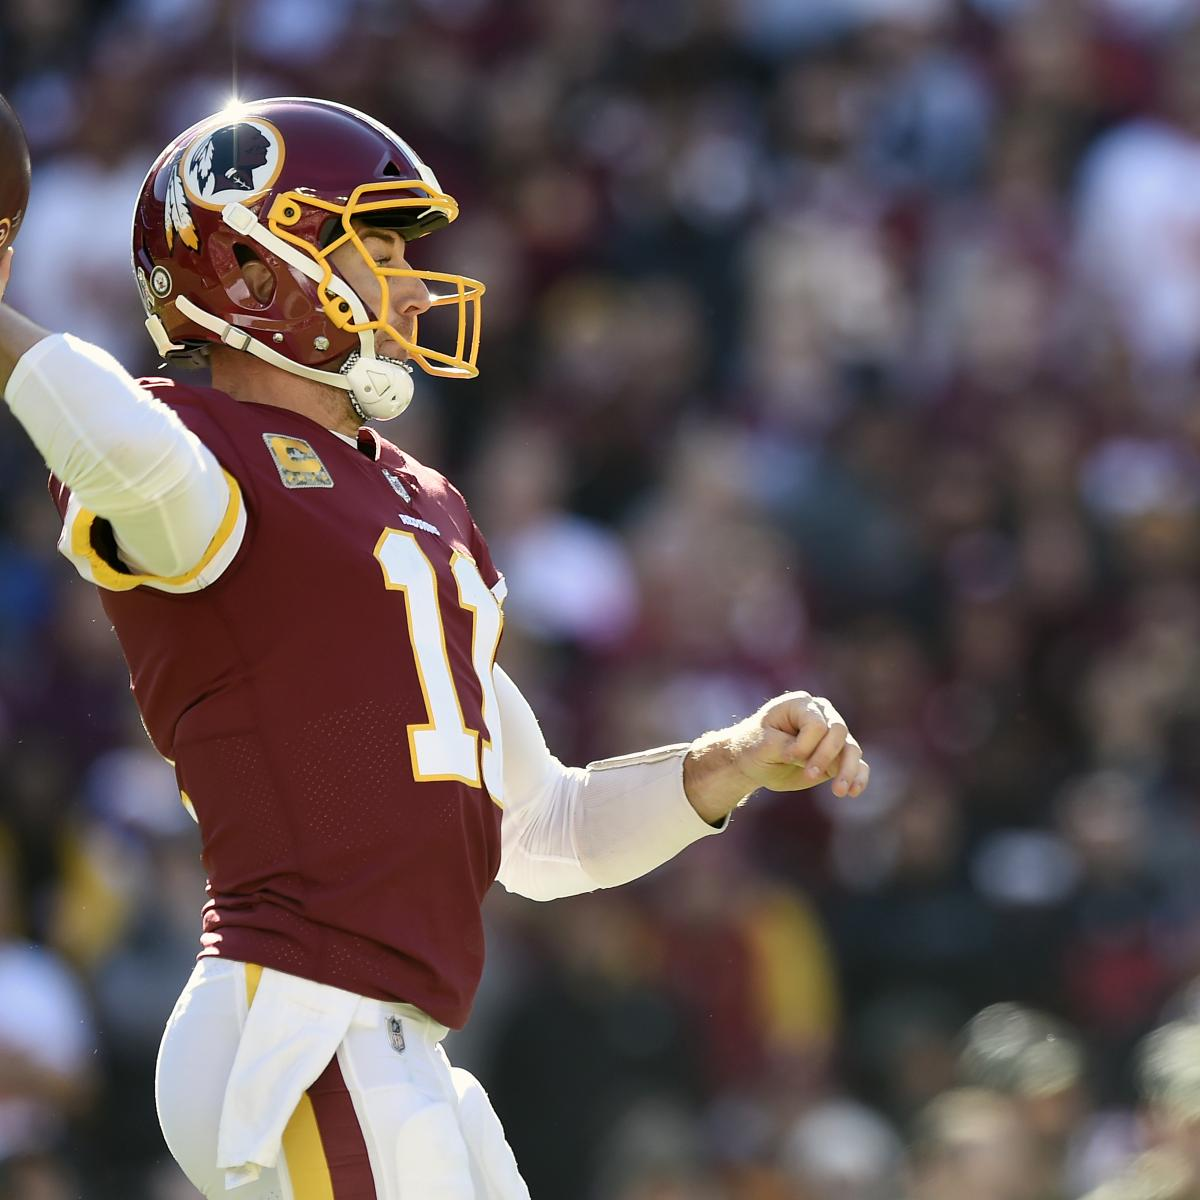 Start 'Em, Sit 'Em Week 10: Smart Matchup Plays, Sleepers and More